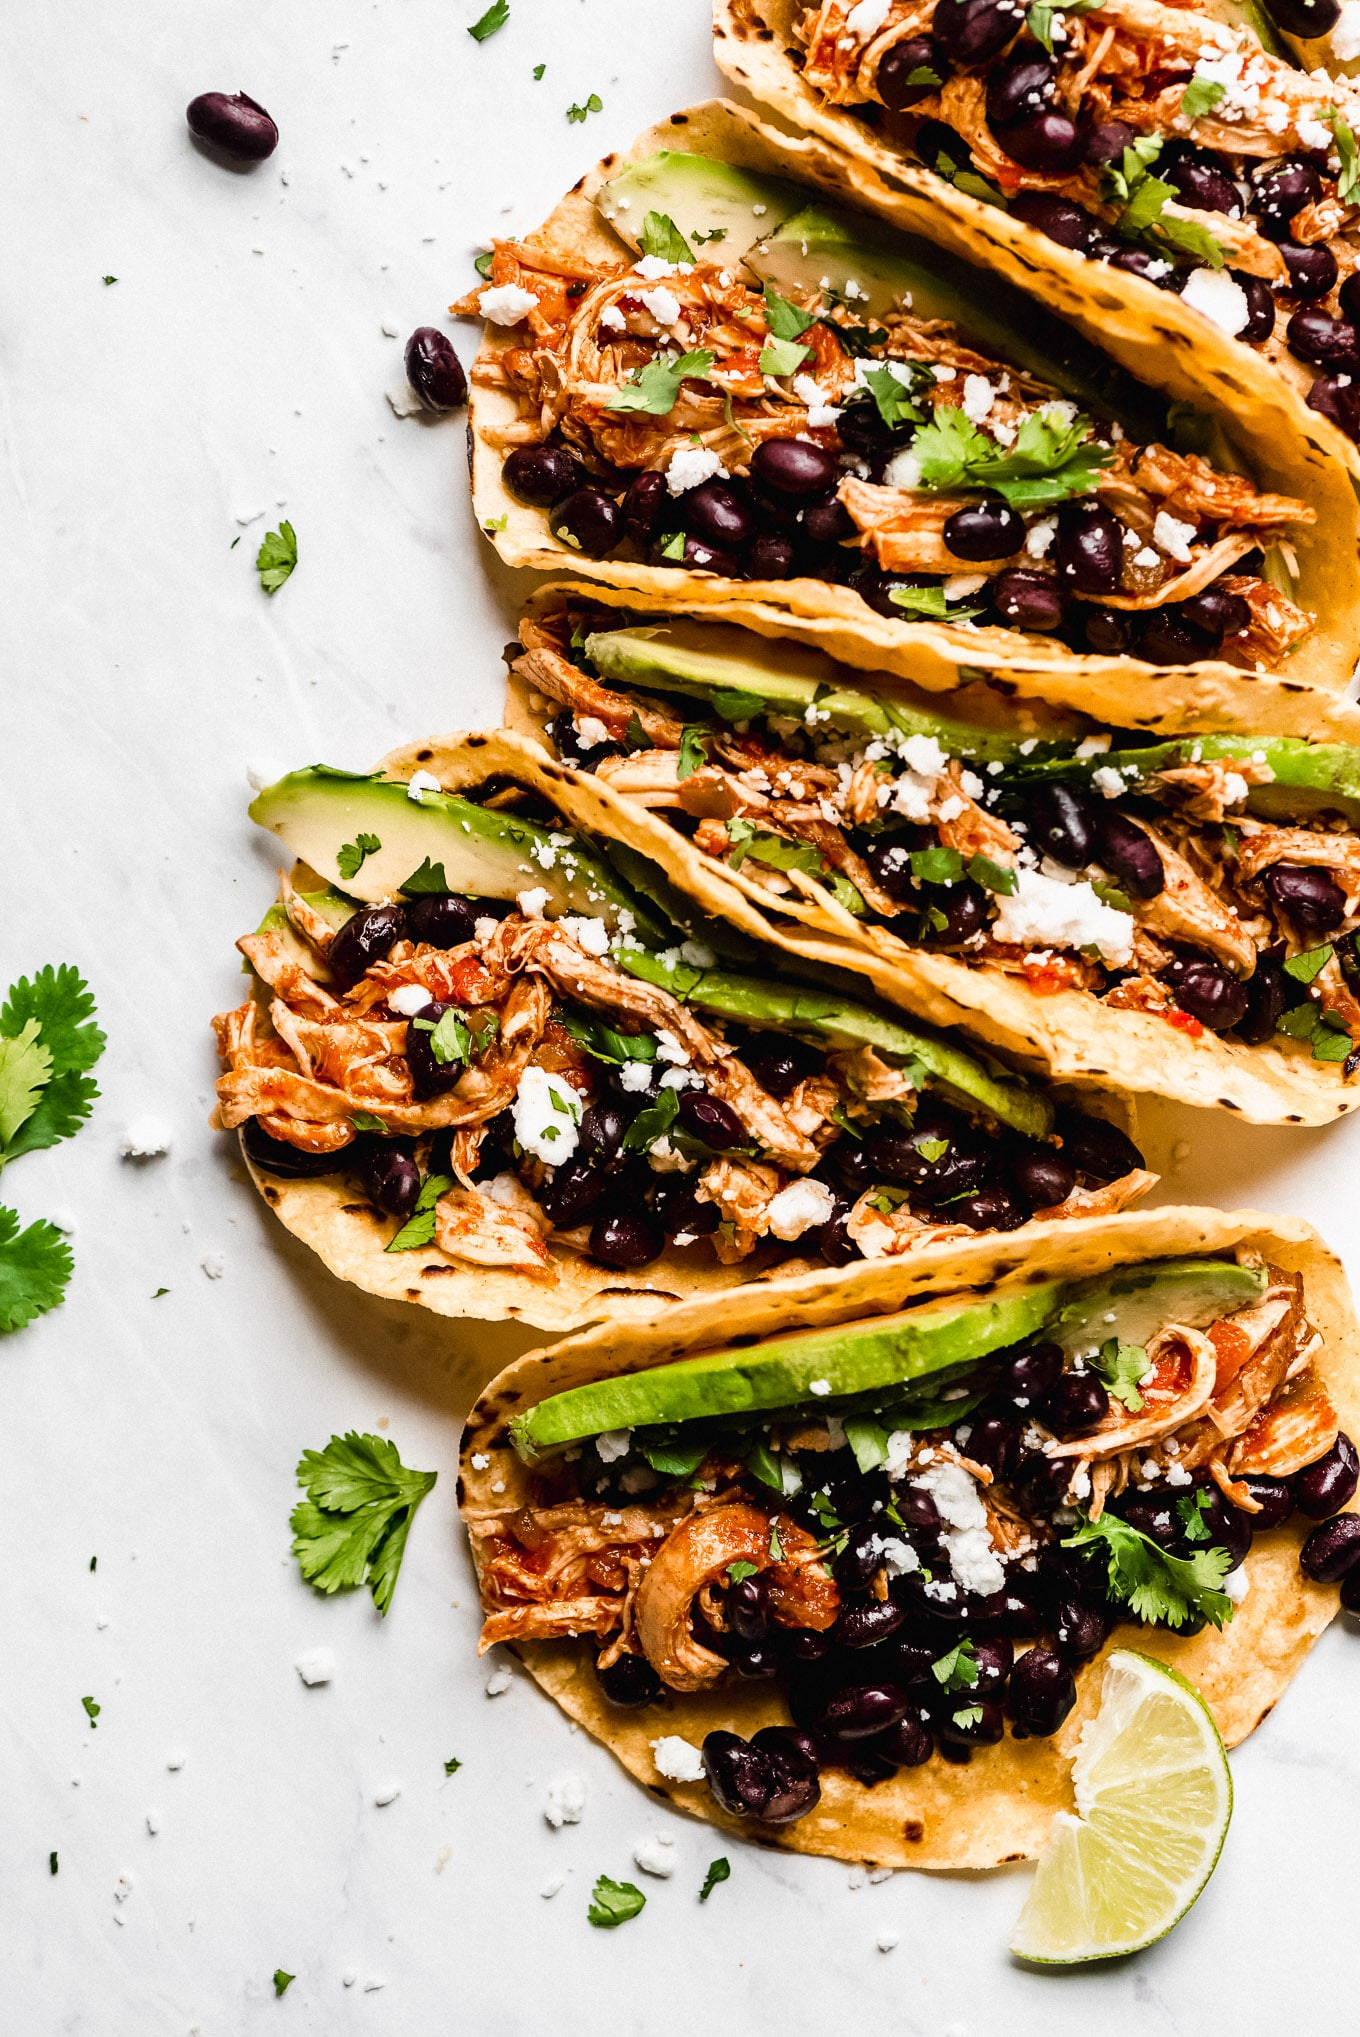 Slow Cooker Salsa Chicken Tacos loaded with black beans, cilantro, avocado, and cheese.